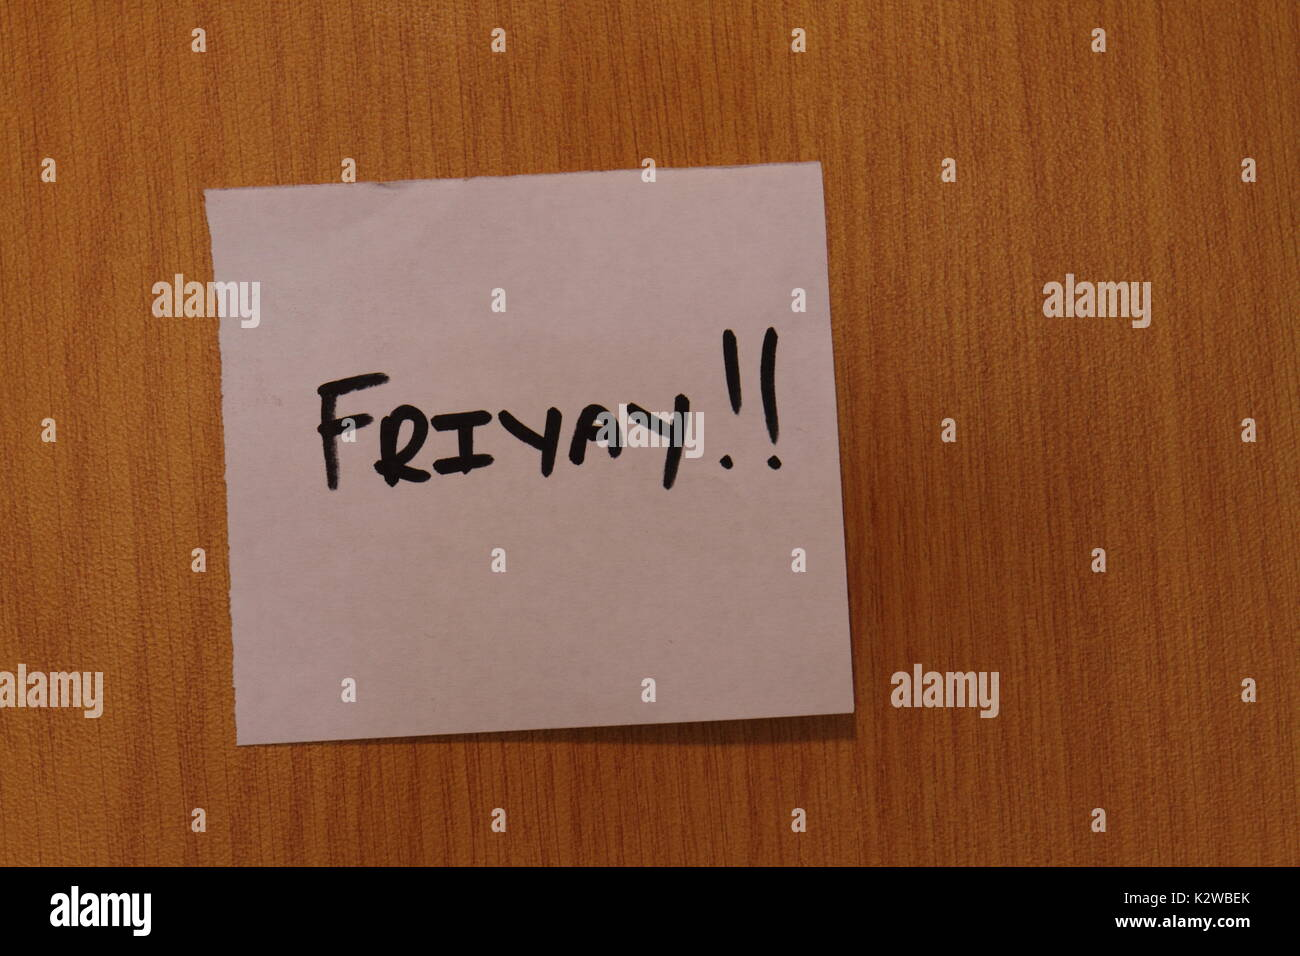 The term Friyay displayed on a hand written note stuck to a wooden notice board in landscape format with a clear background and copy space - Stock Image